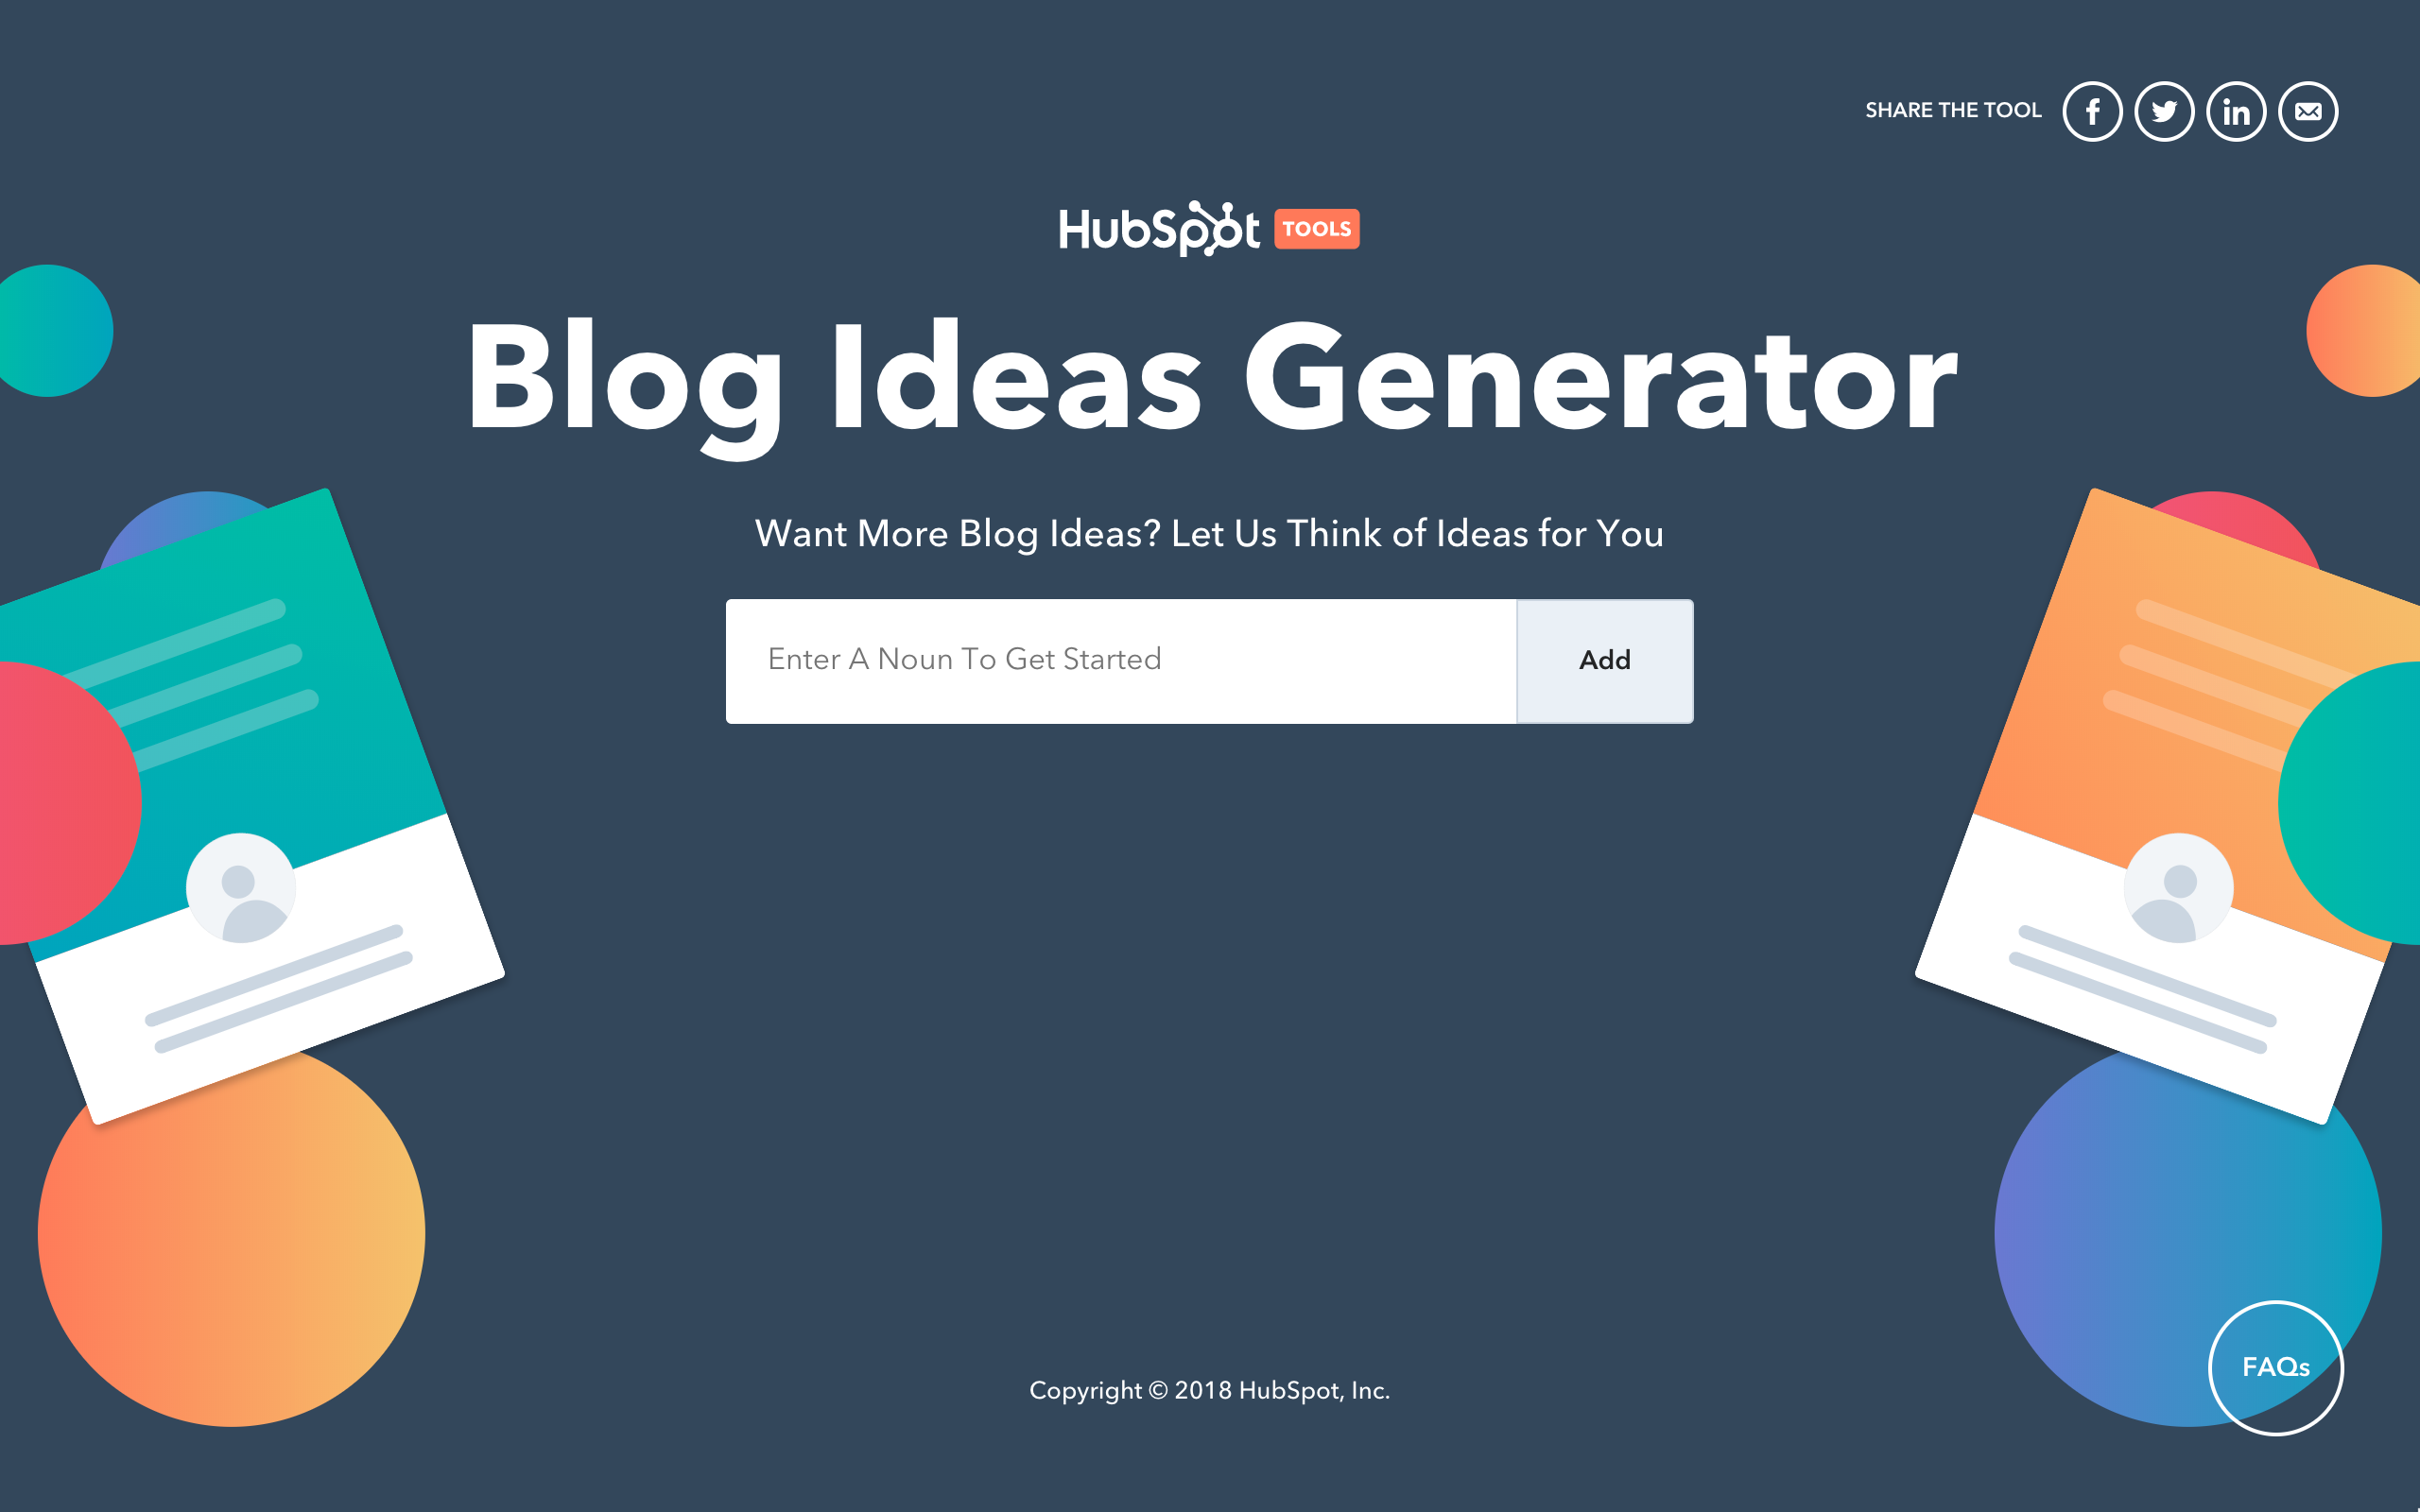 The Blog Ideas Generator by HubSpot allows you to enter a noun then it will produce titles for you to choose from.